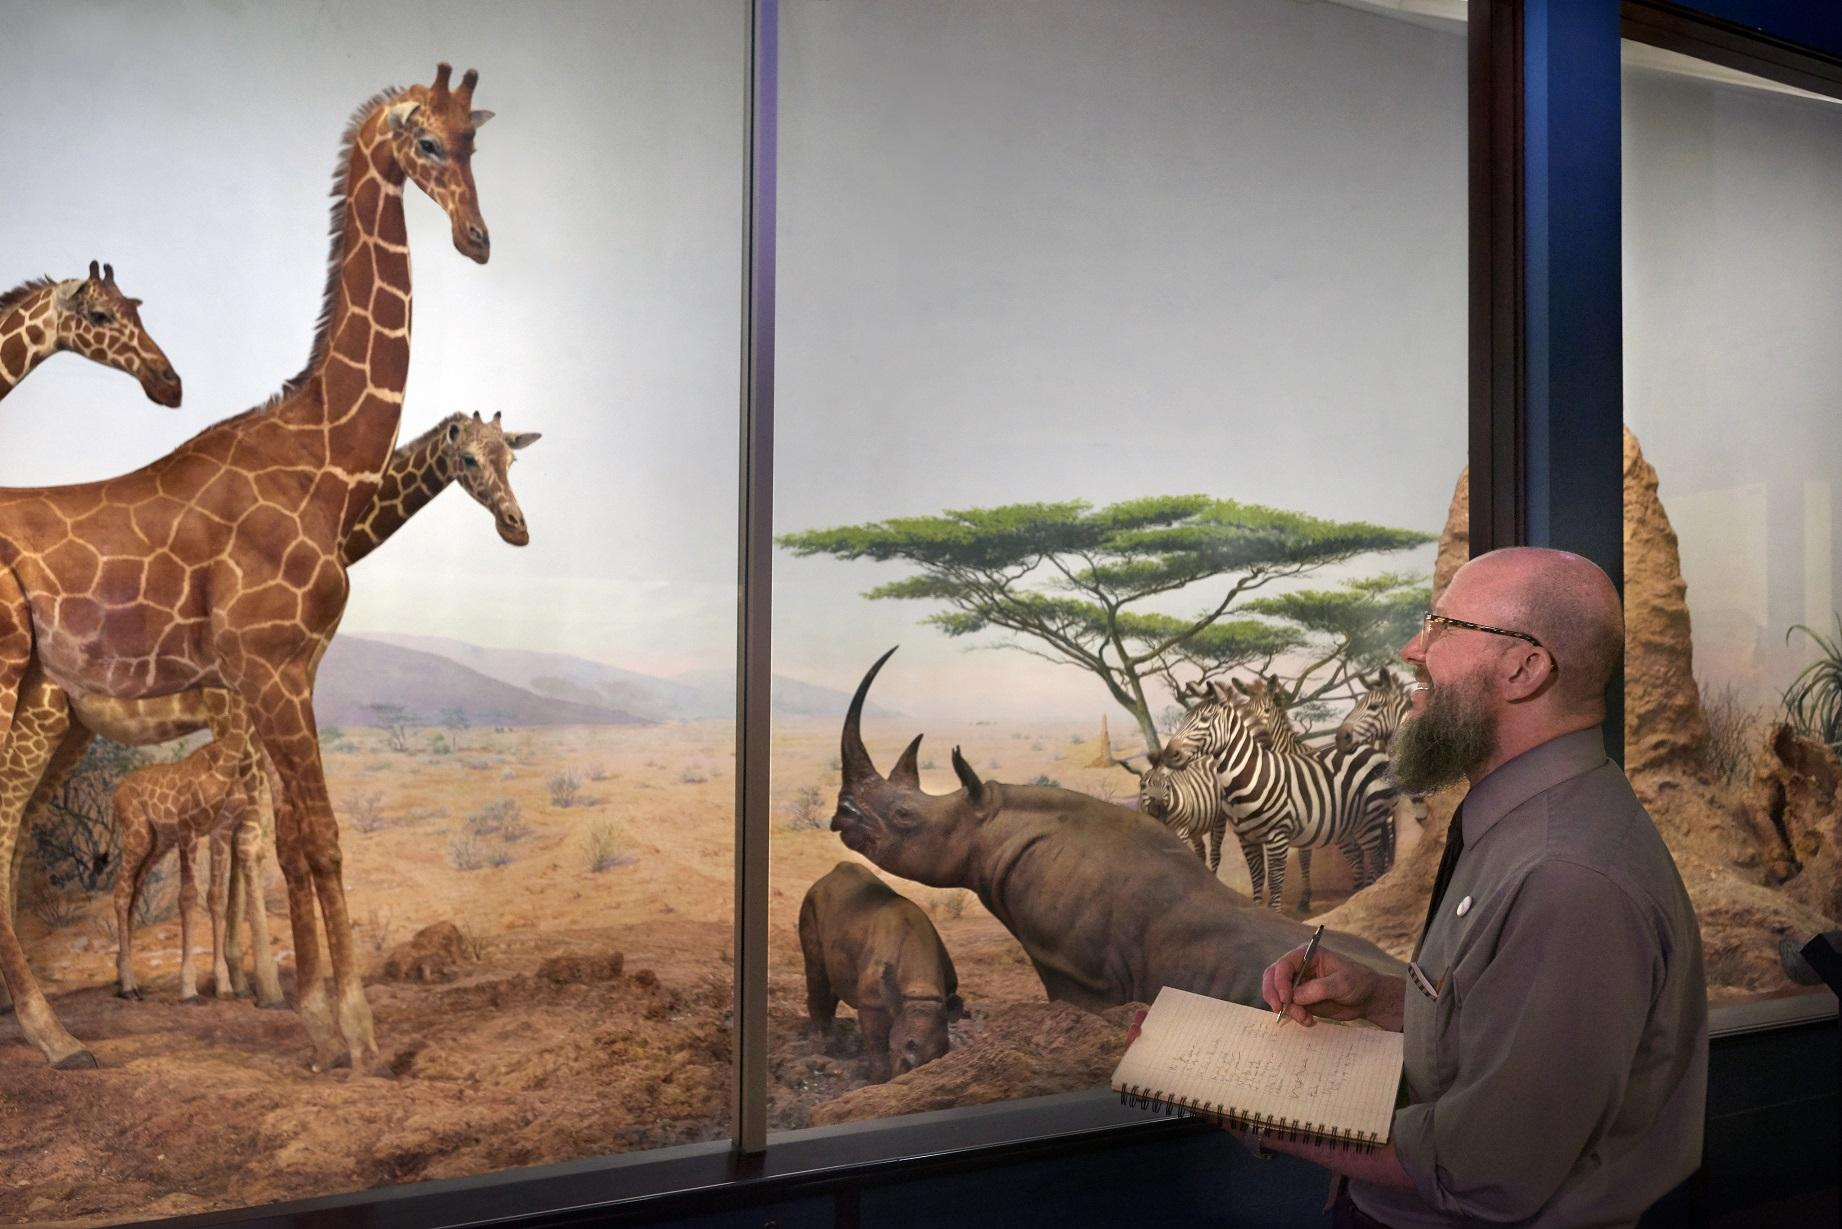 Eric Elshtain takes notes as he tours the Field's exhibits. (John Weinstein / The Field Museum)